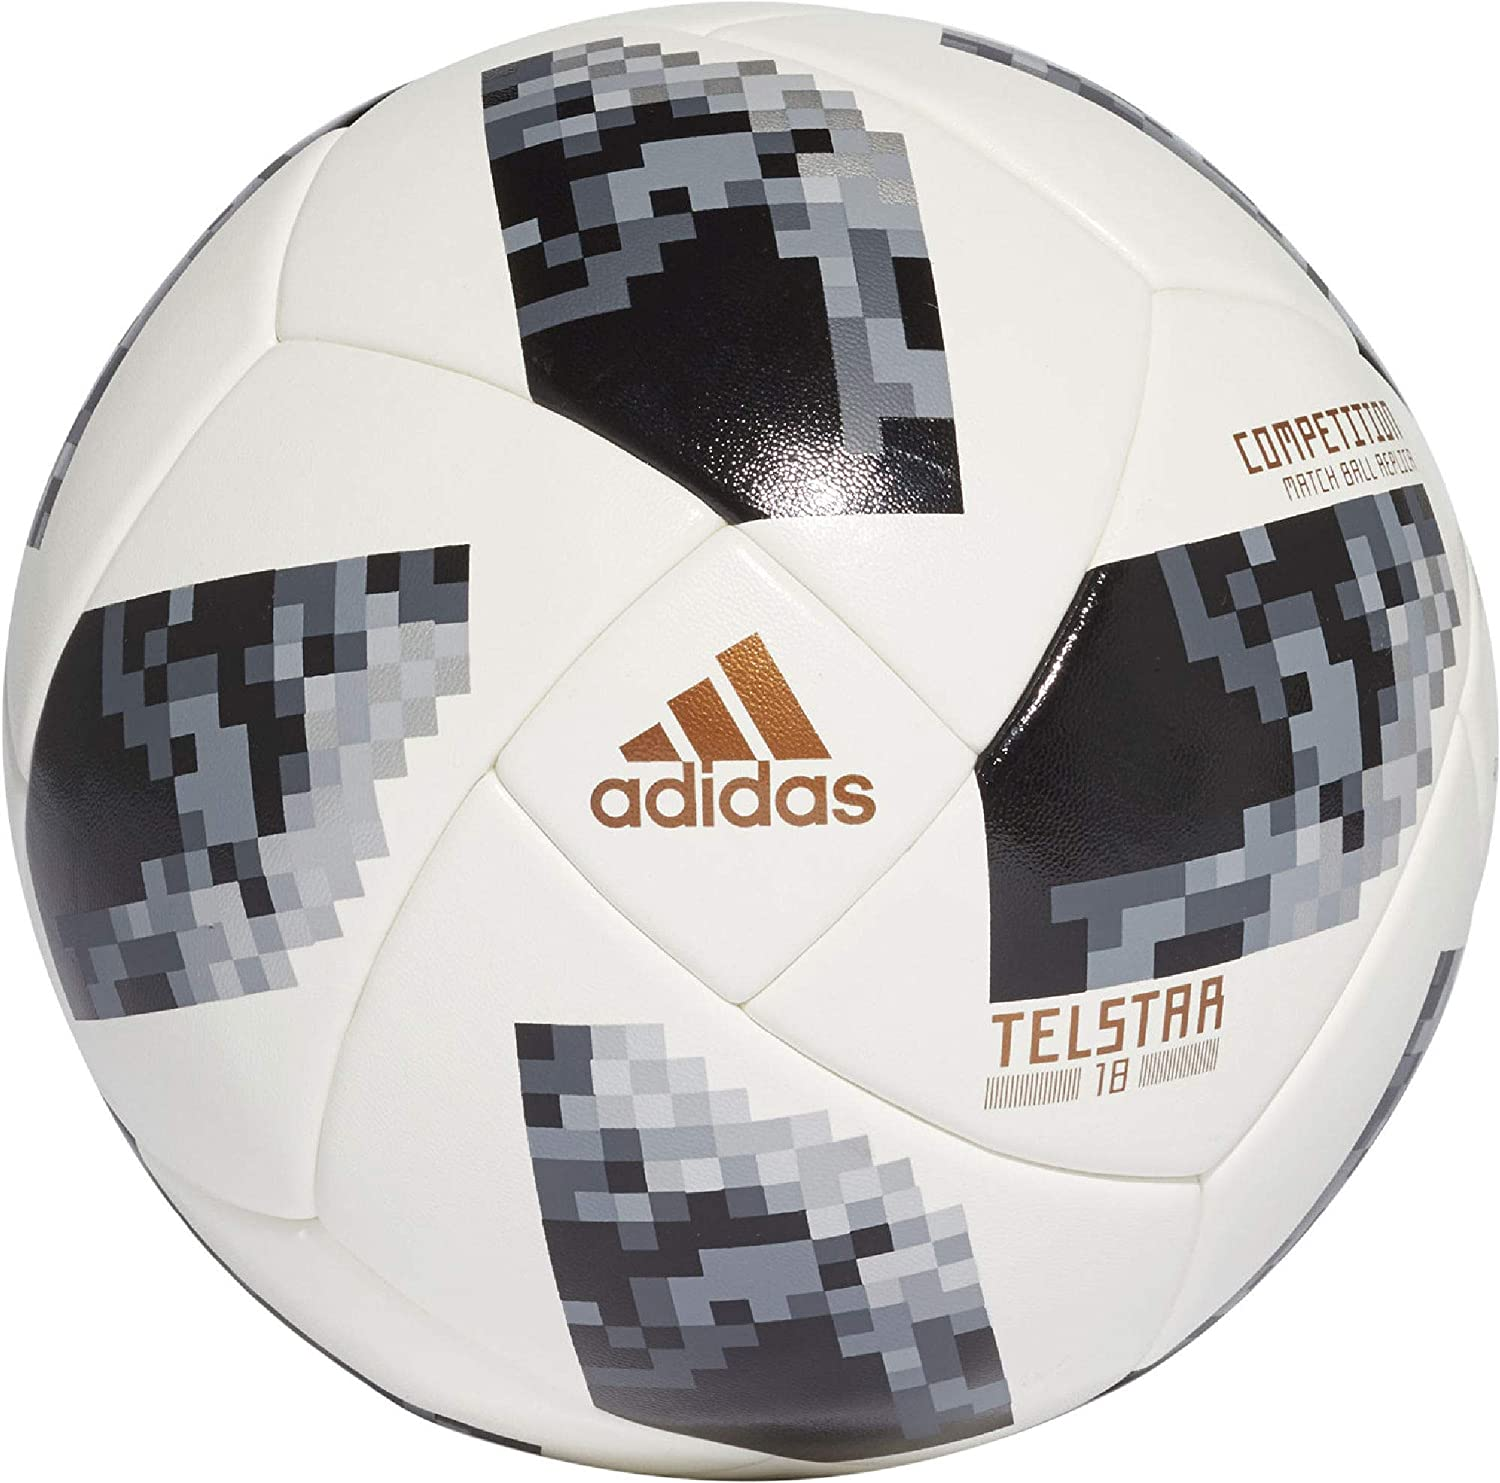 adidas World Cup Comp, Hombre, Color Blanco/Negro/Plamet, Talla 4 ...